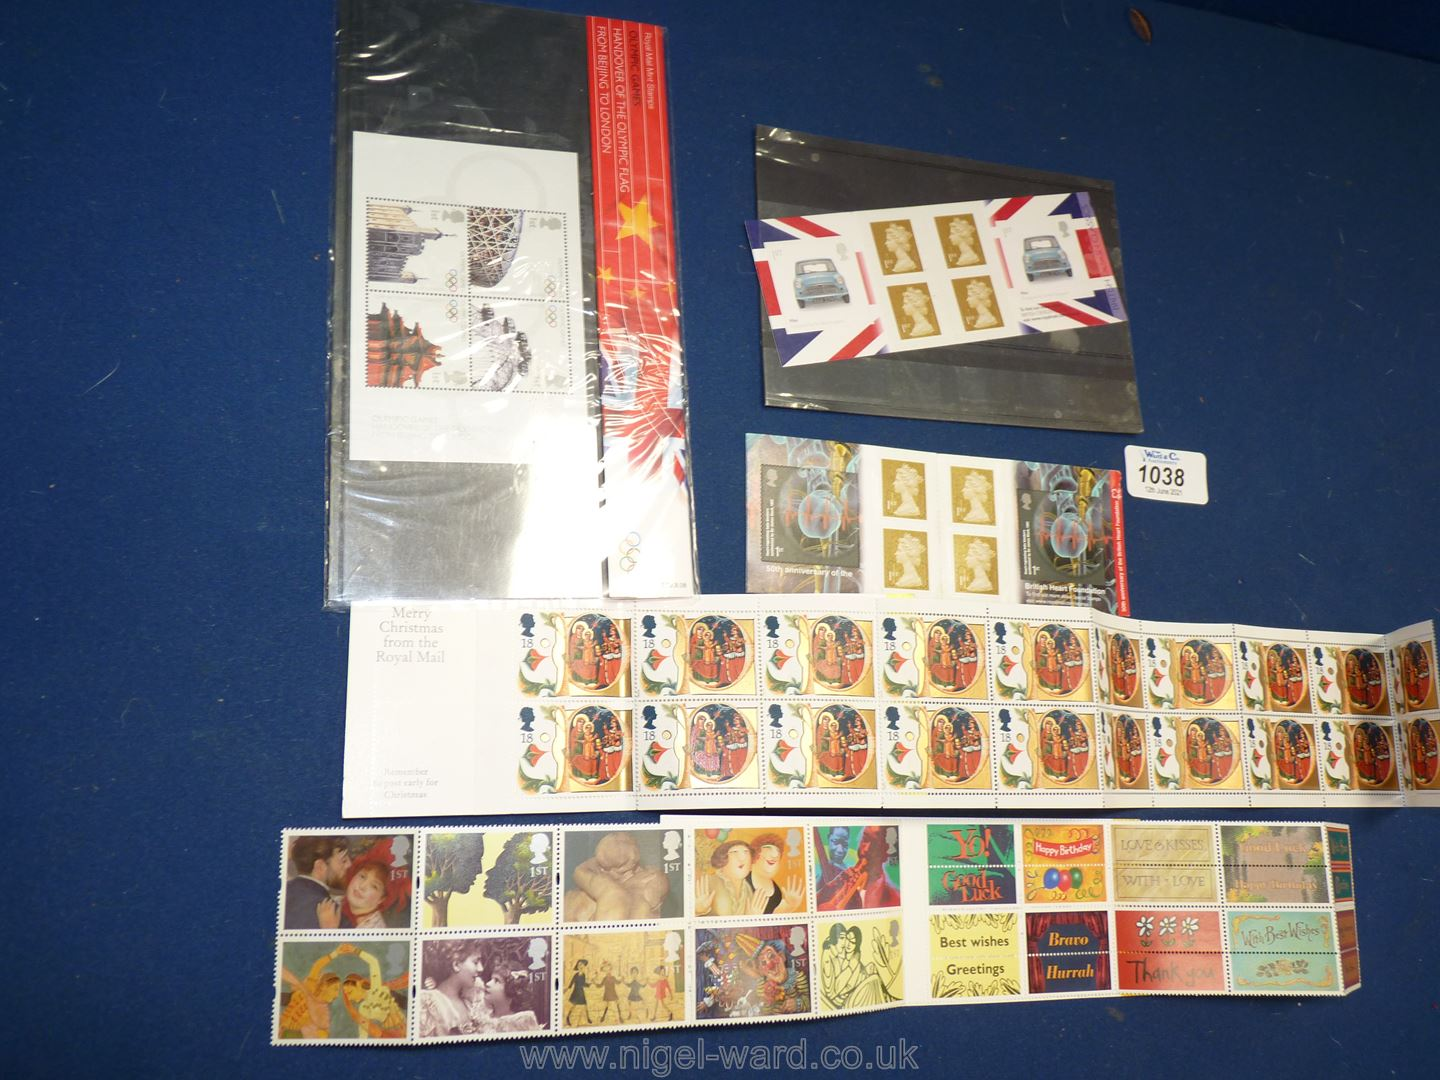 Four complete Stamp books and an Olympic presentation pack.